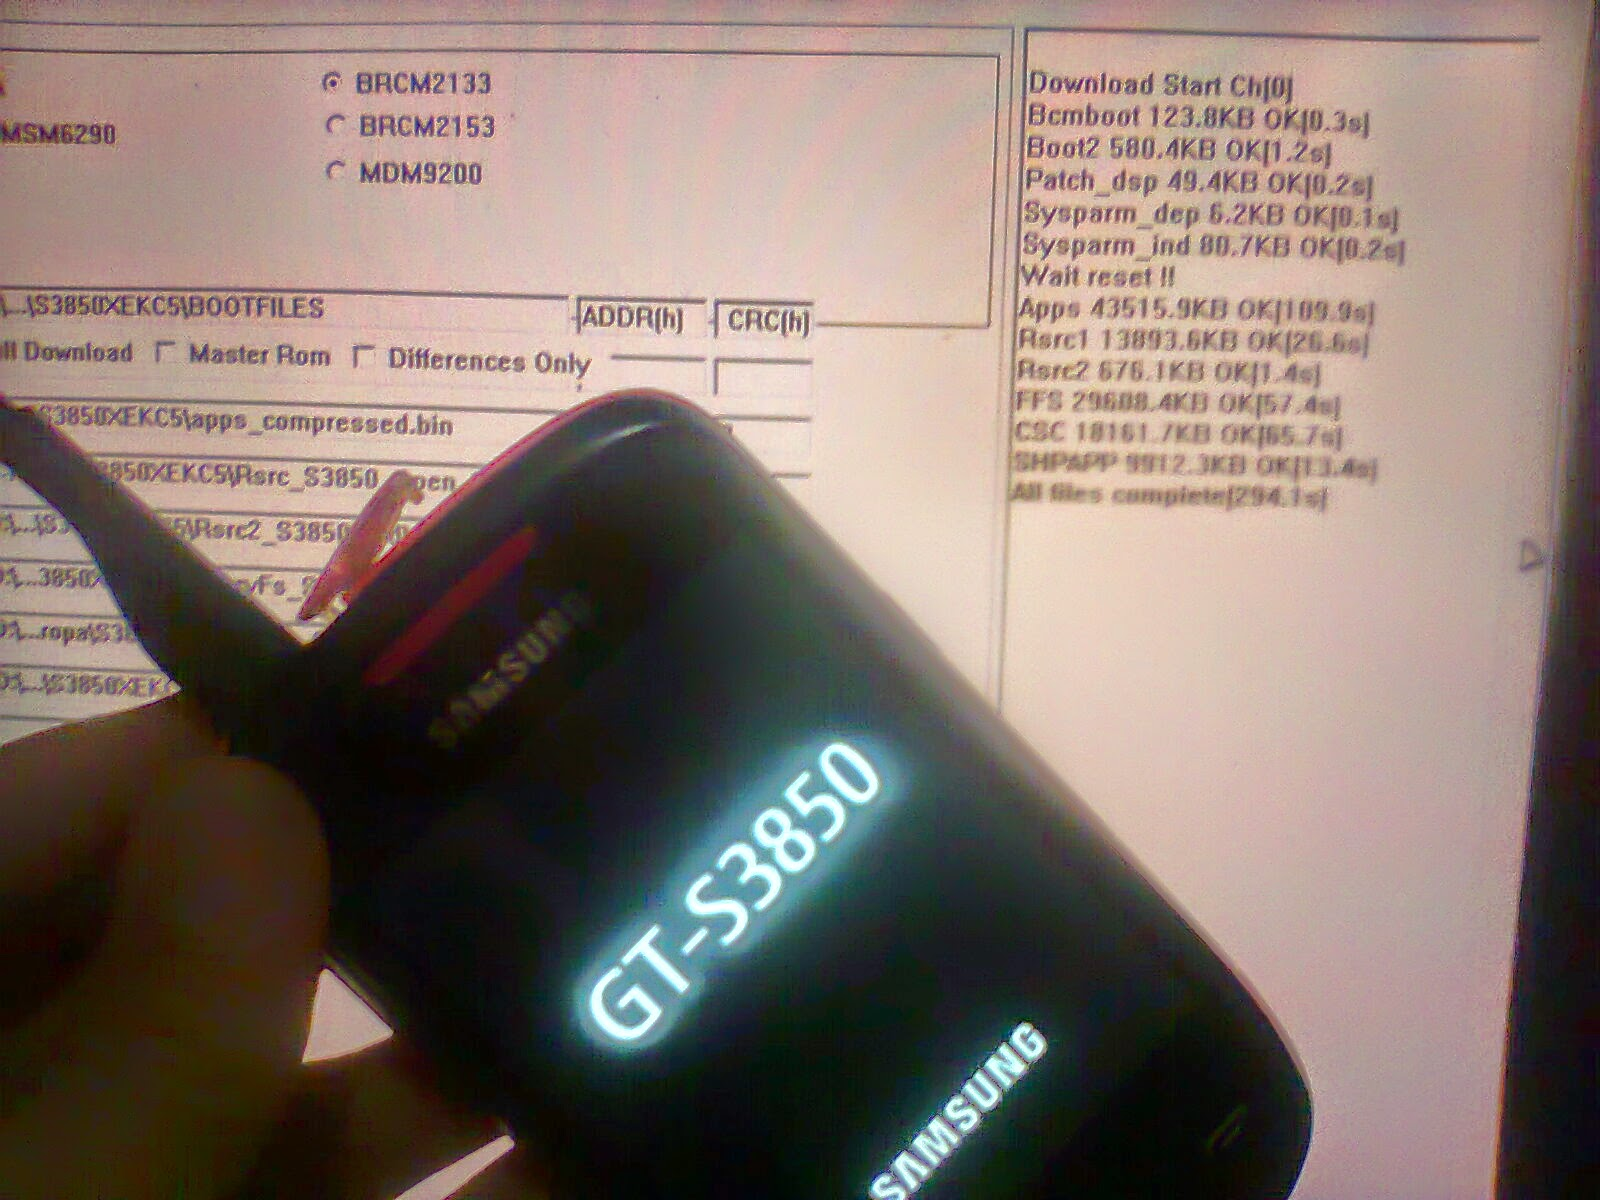 download firmware samsung corby 2 gt-s3850